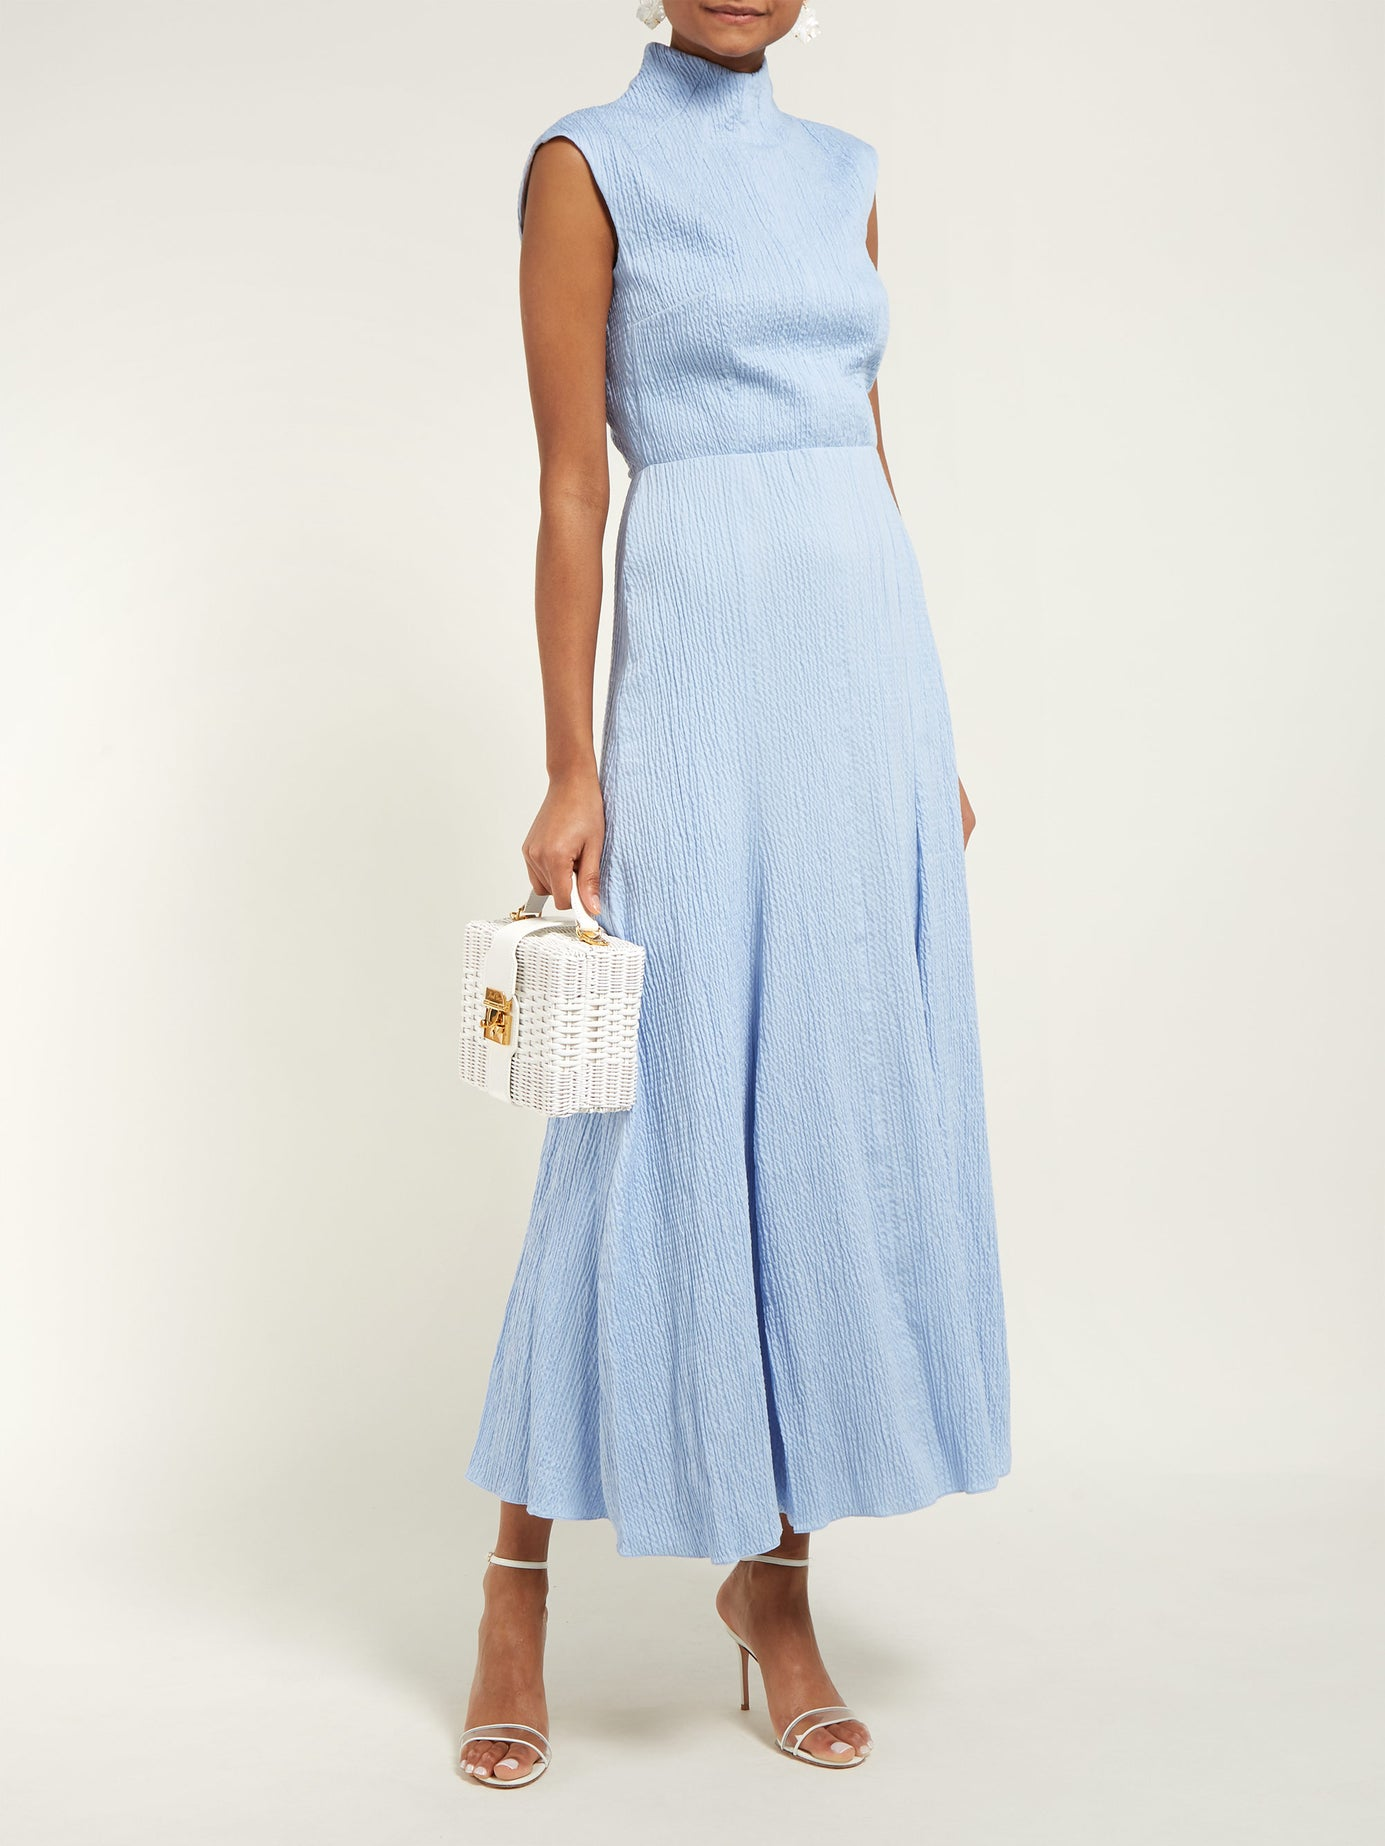 hello color crush! this  graceful dress  is splurge worthy!